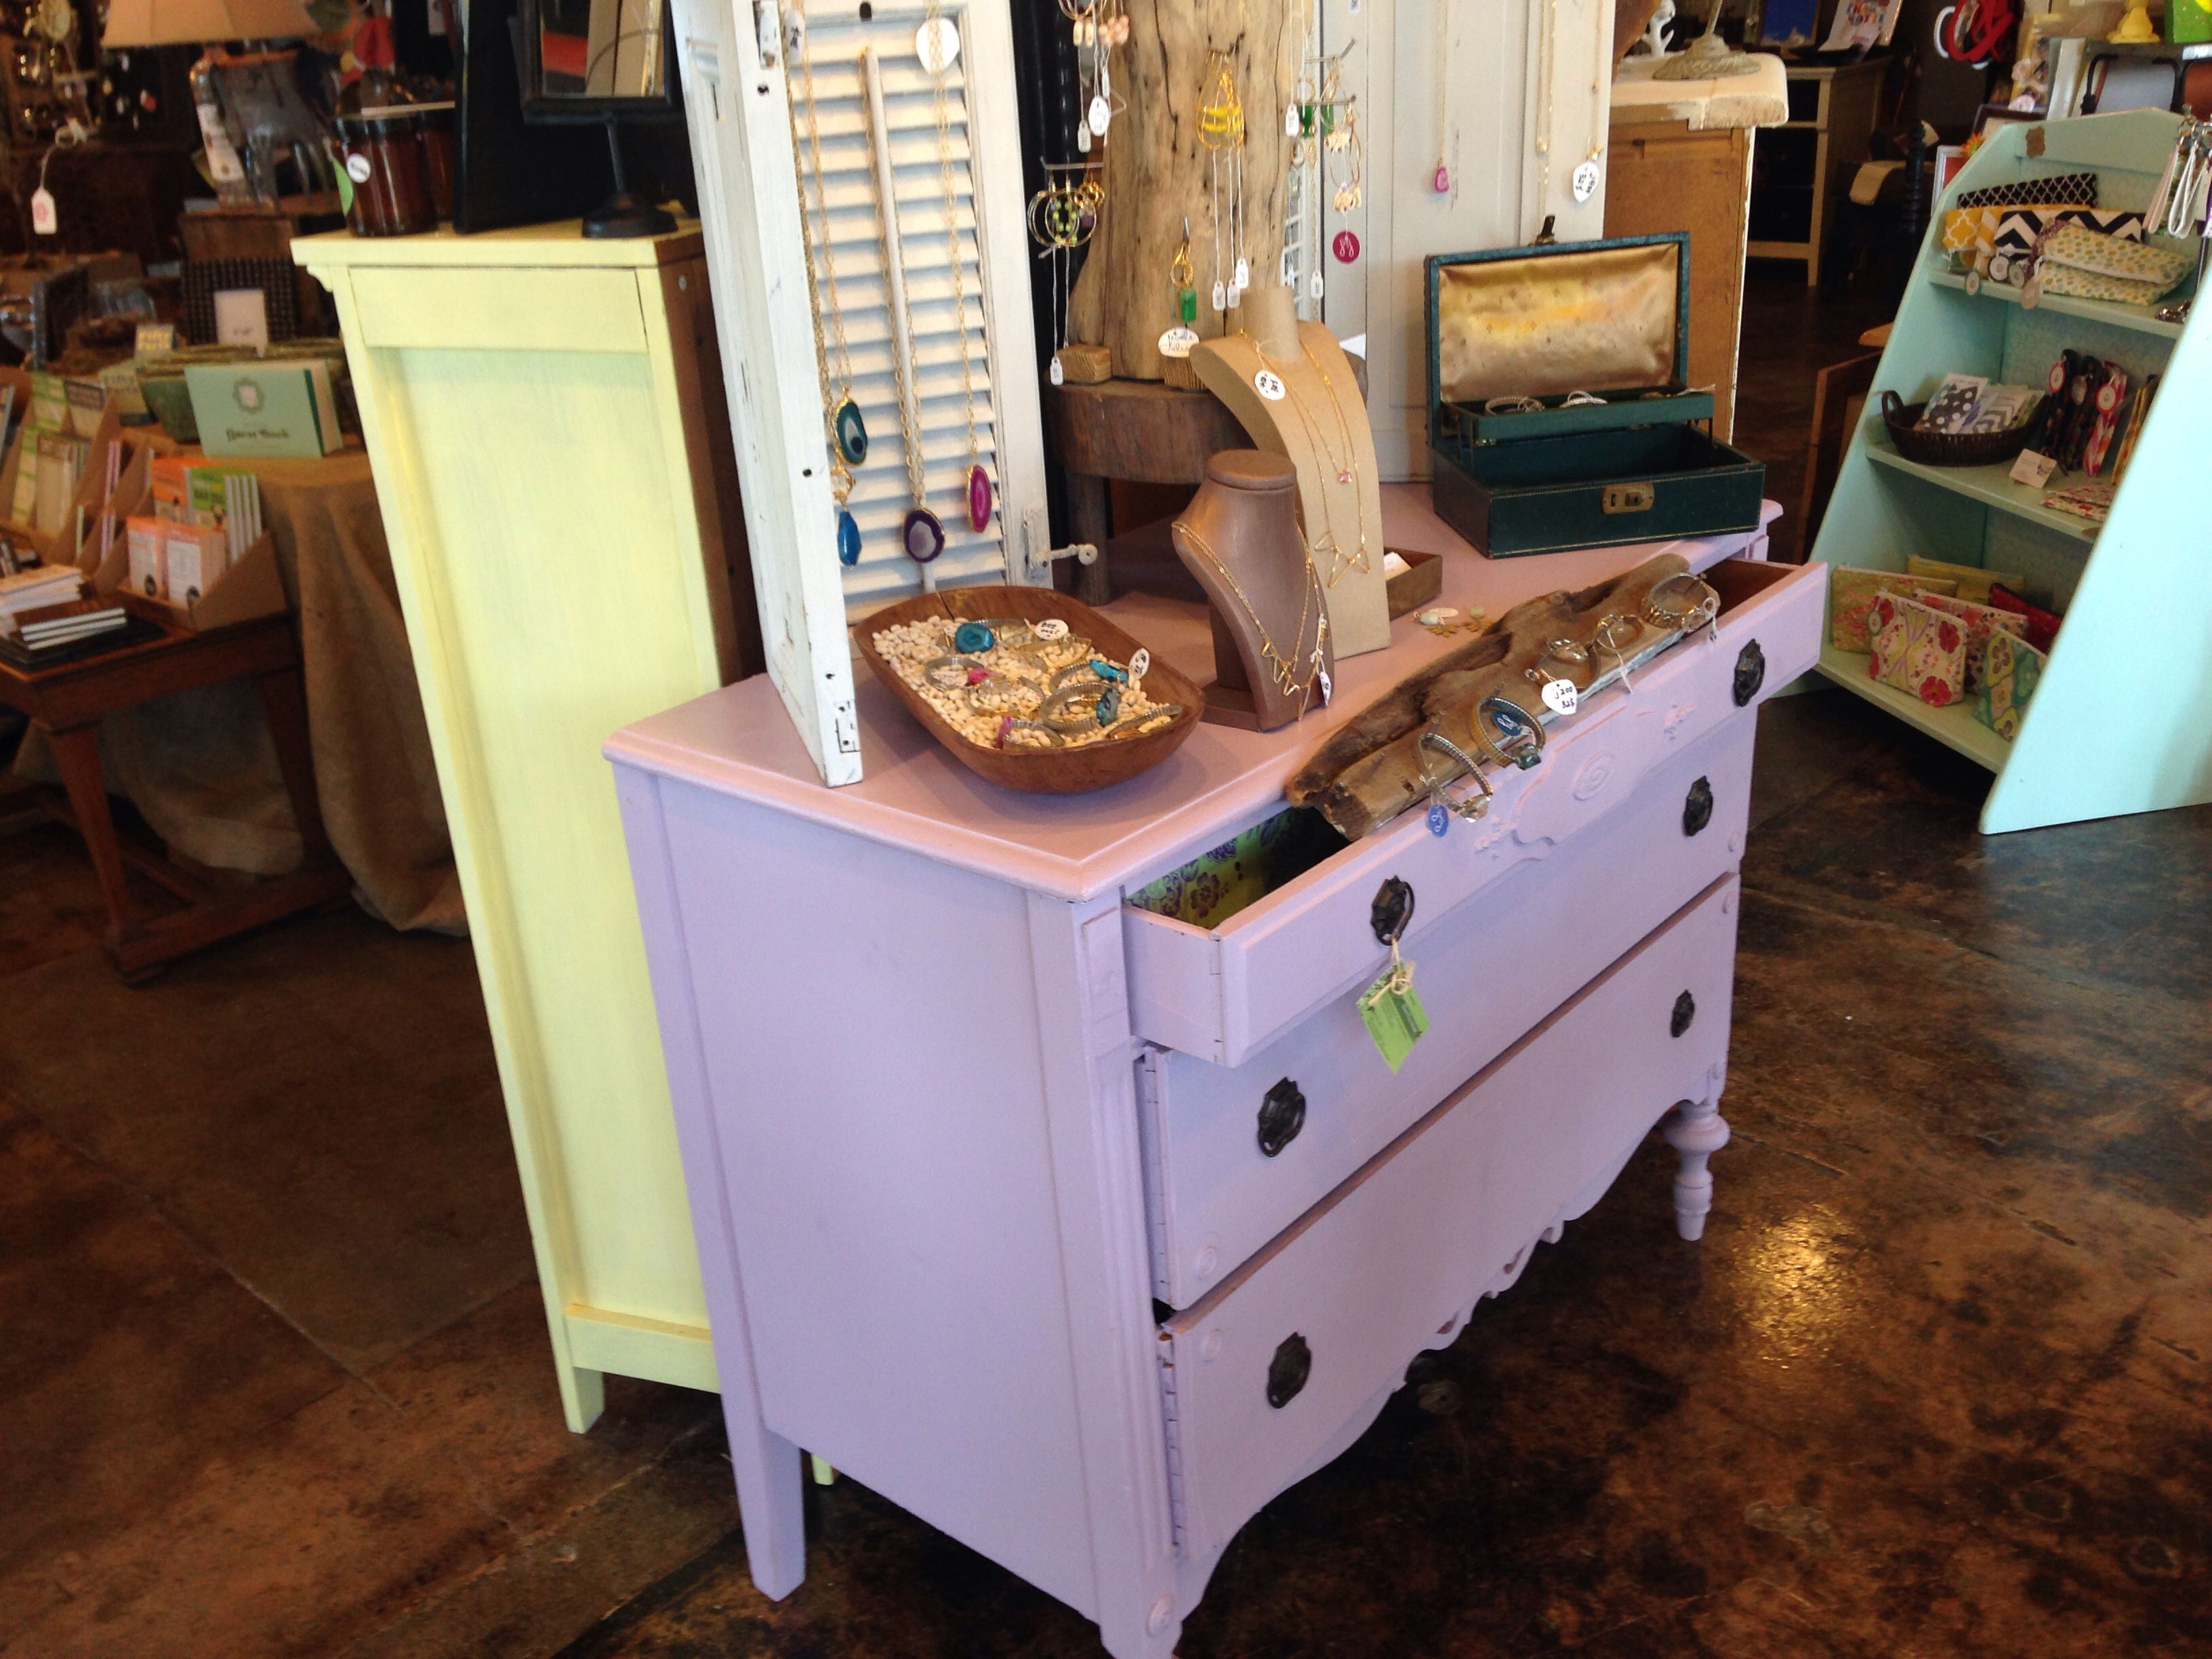 Painted Furniture At The Boulevard Sound End Charlotte Nc Love